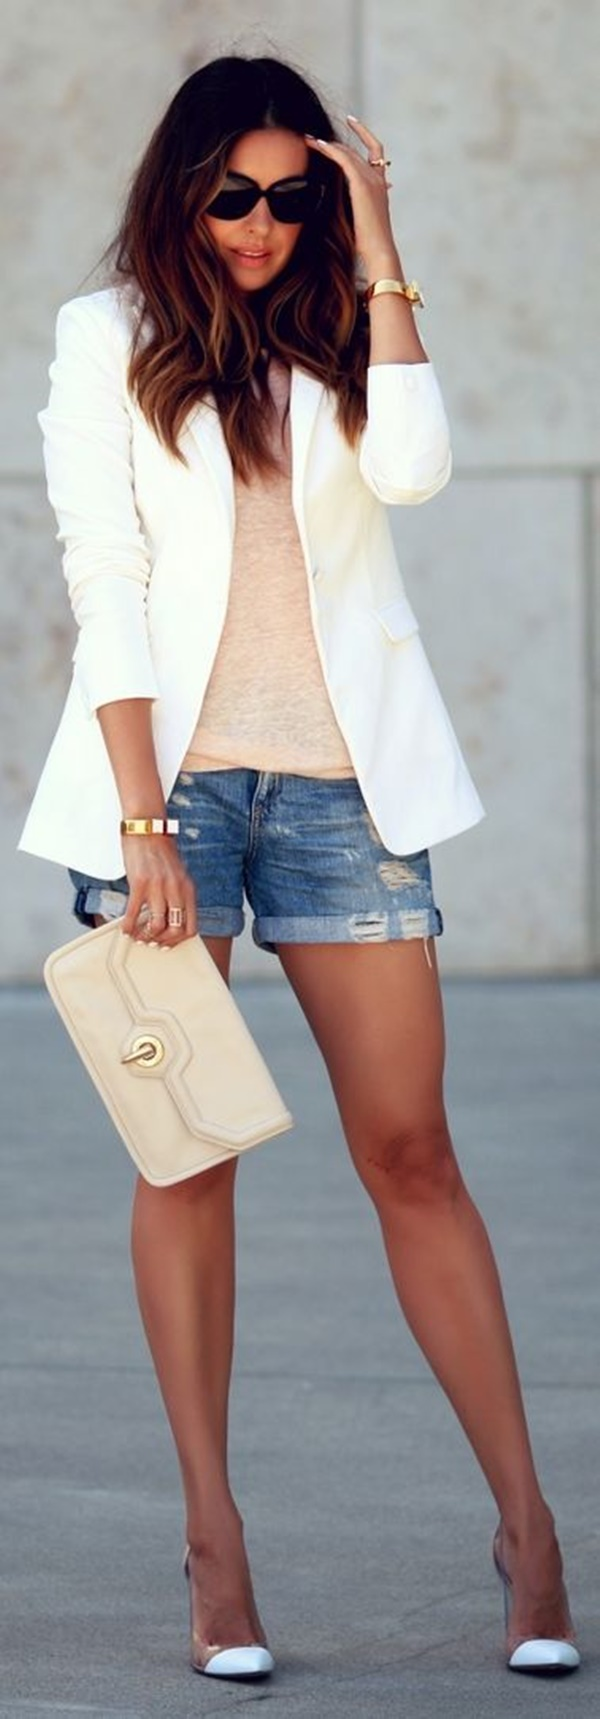 denim shorts outfits (24)